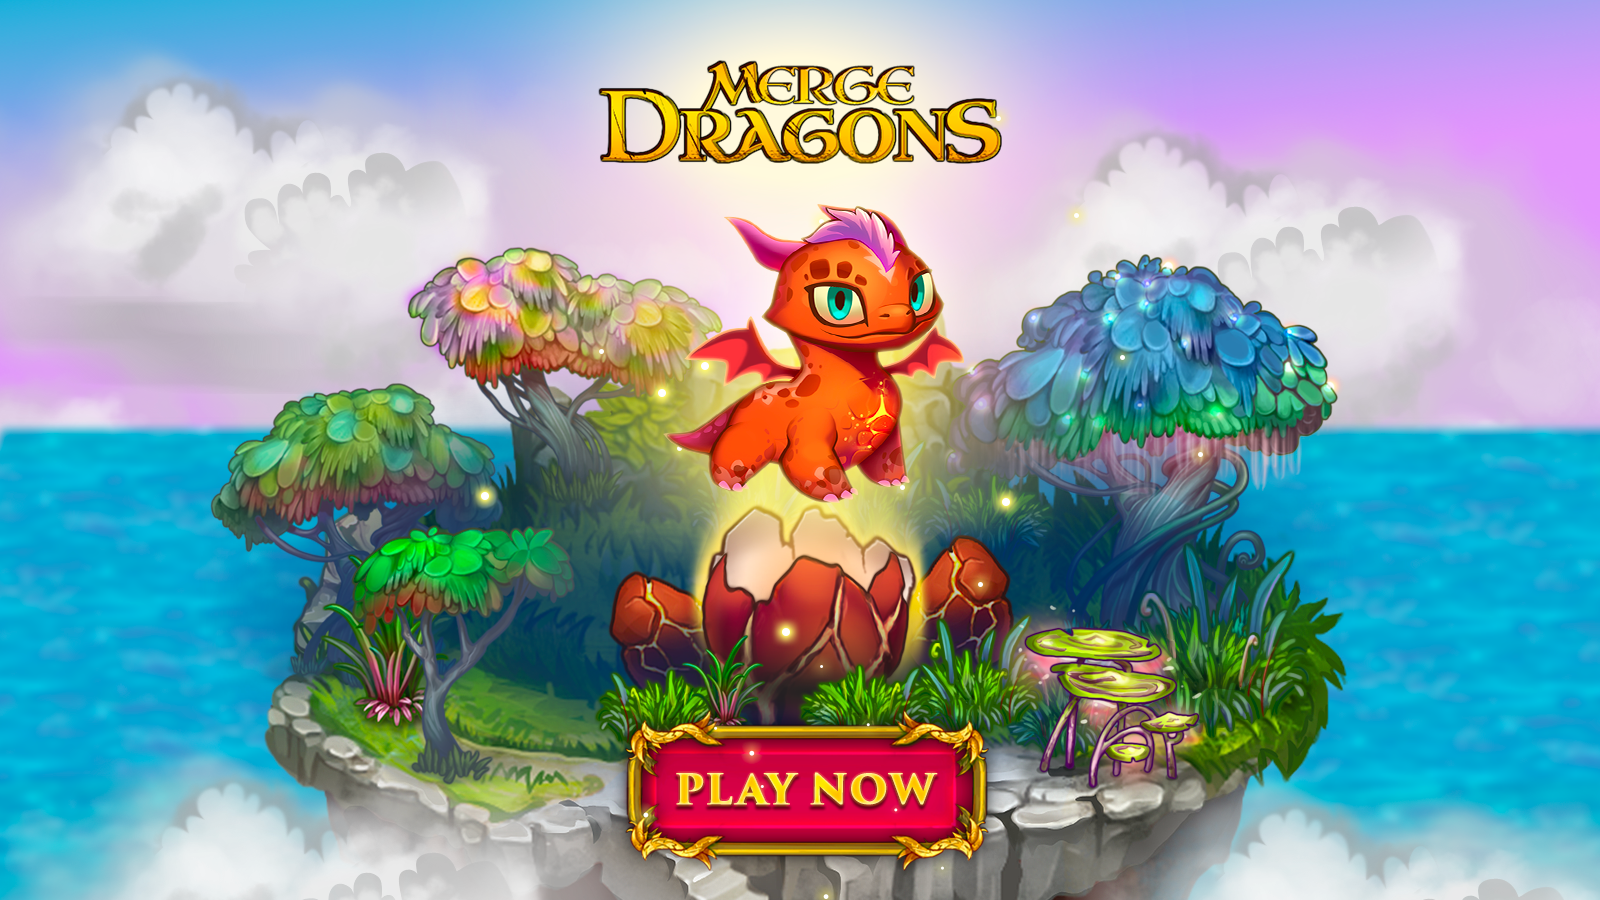 Hatch dragons eggs to heal the land in the pretty puzzler Merge Dragons! out now on iOS